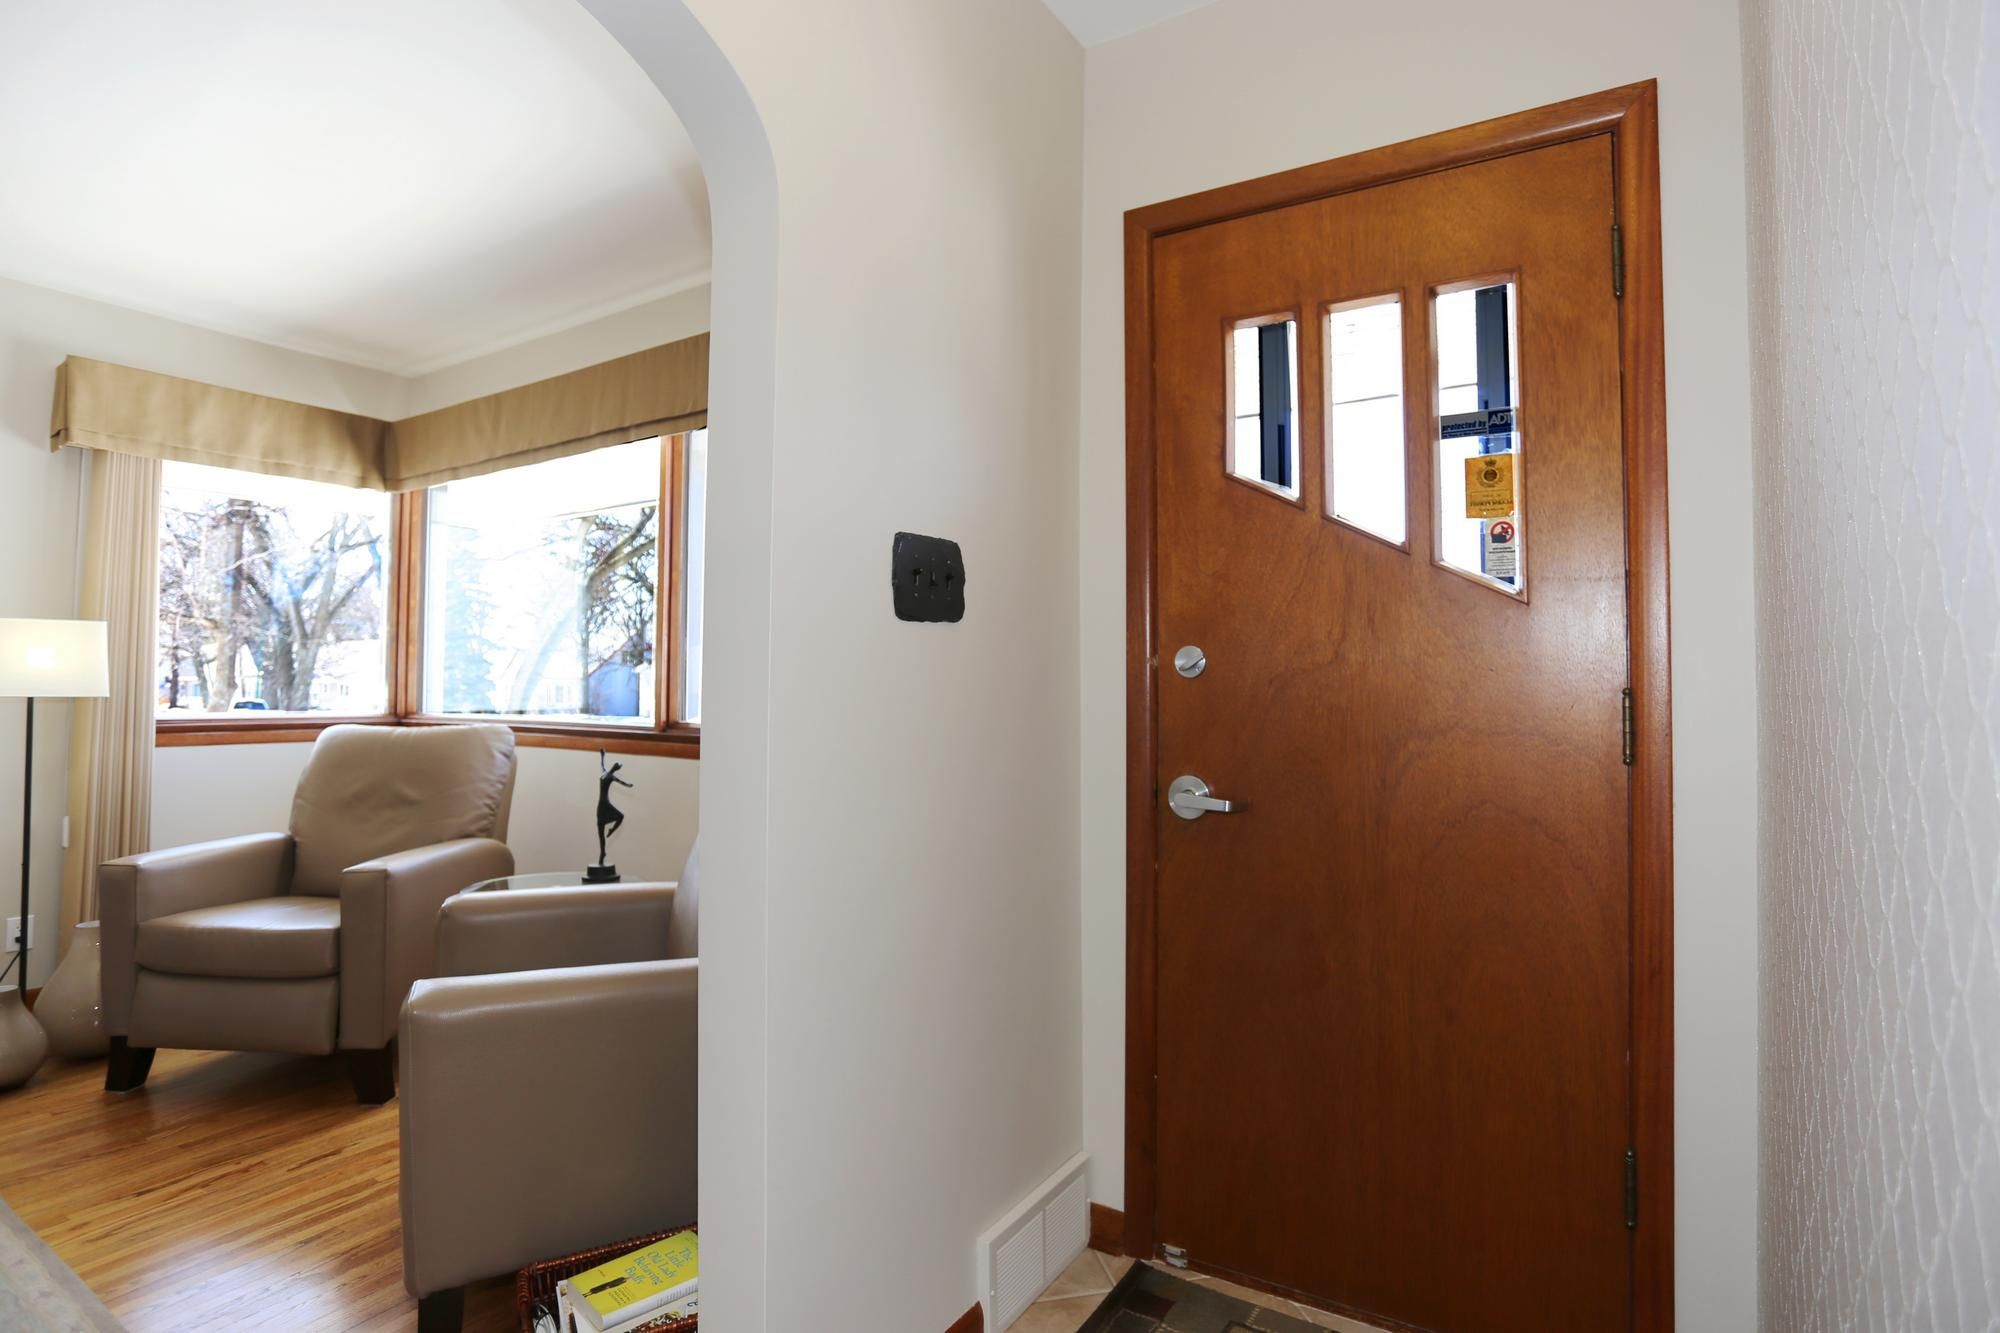 Photo 3: Photos: 349 Guildford Street in Winnipeg: St James Single Family Detached for sale (5E)  : MLS®# 1807654